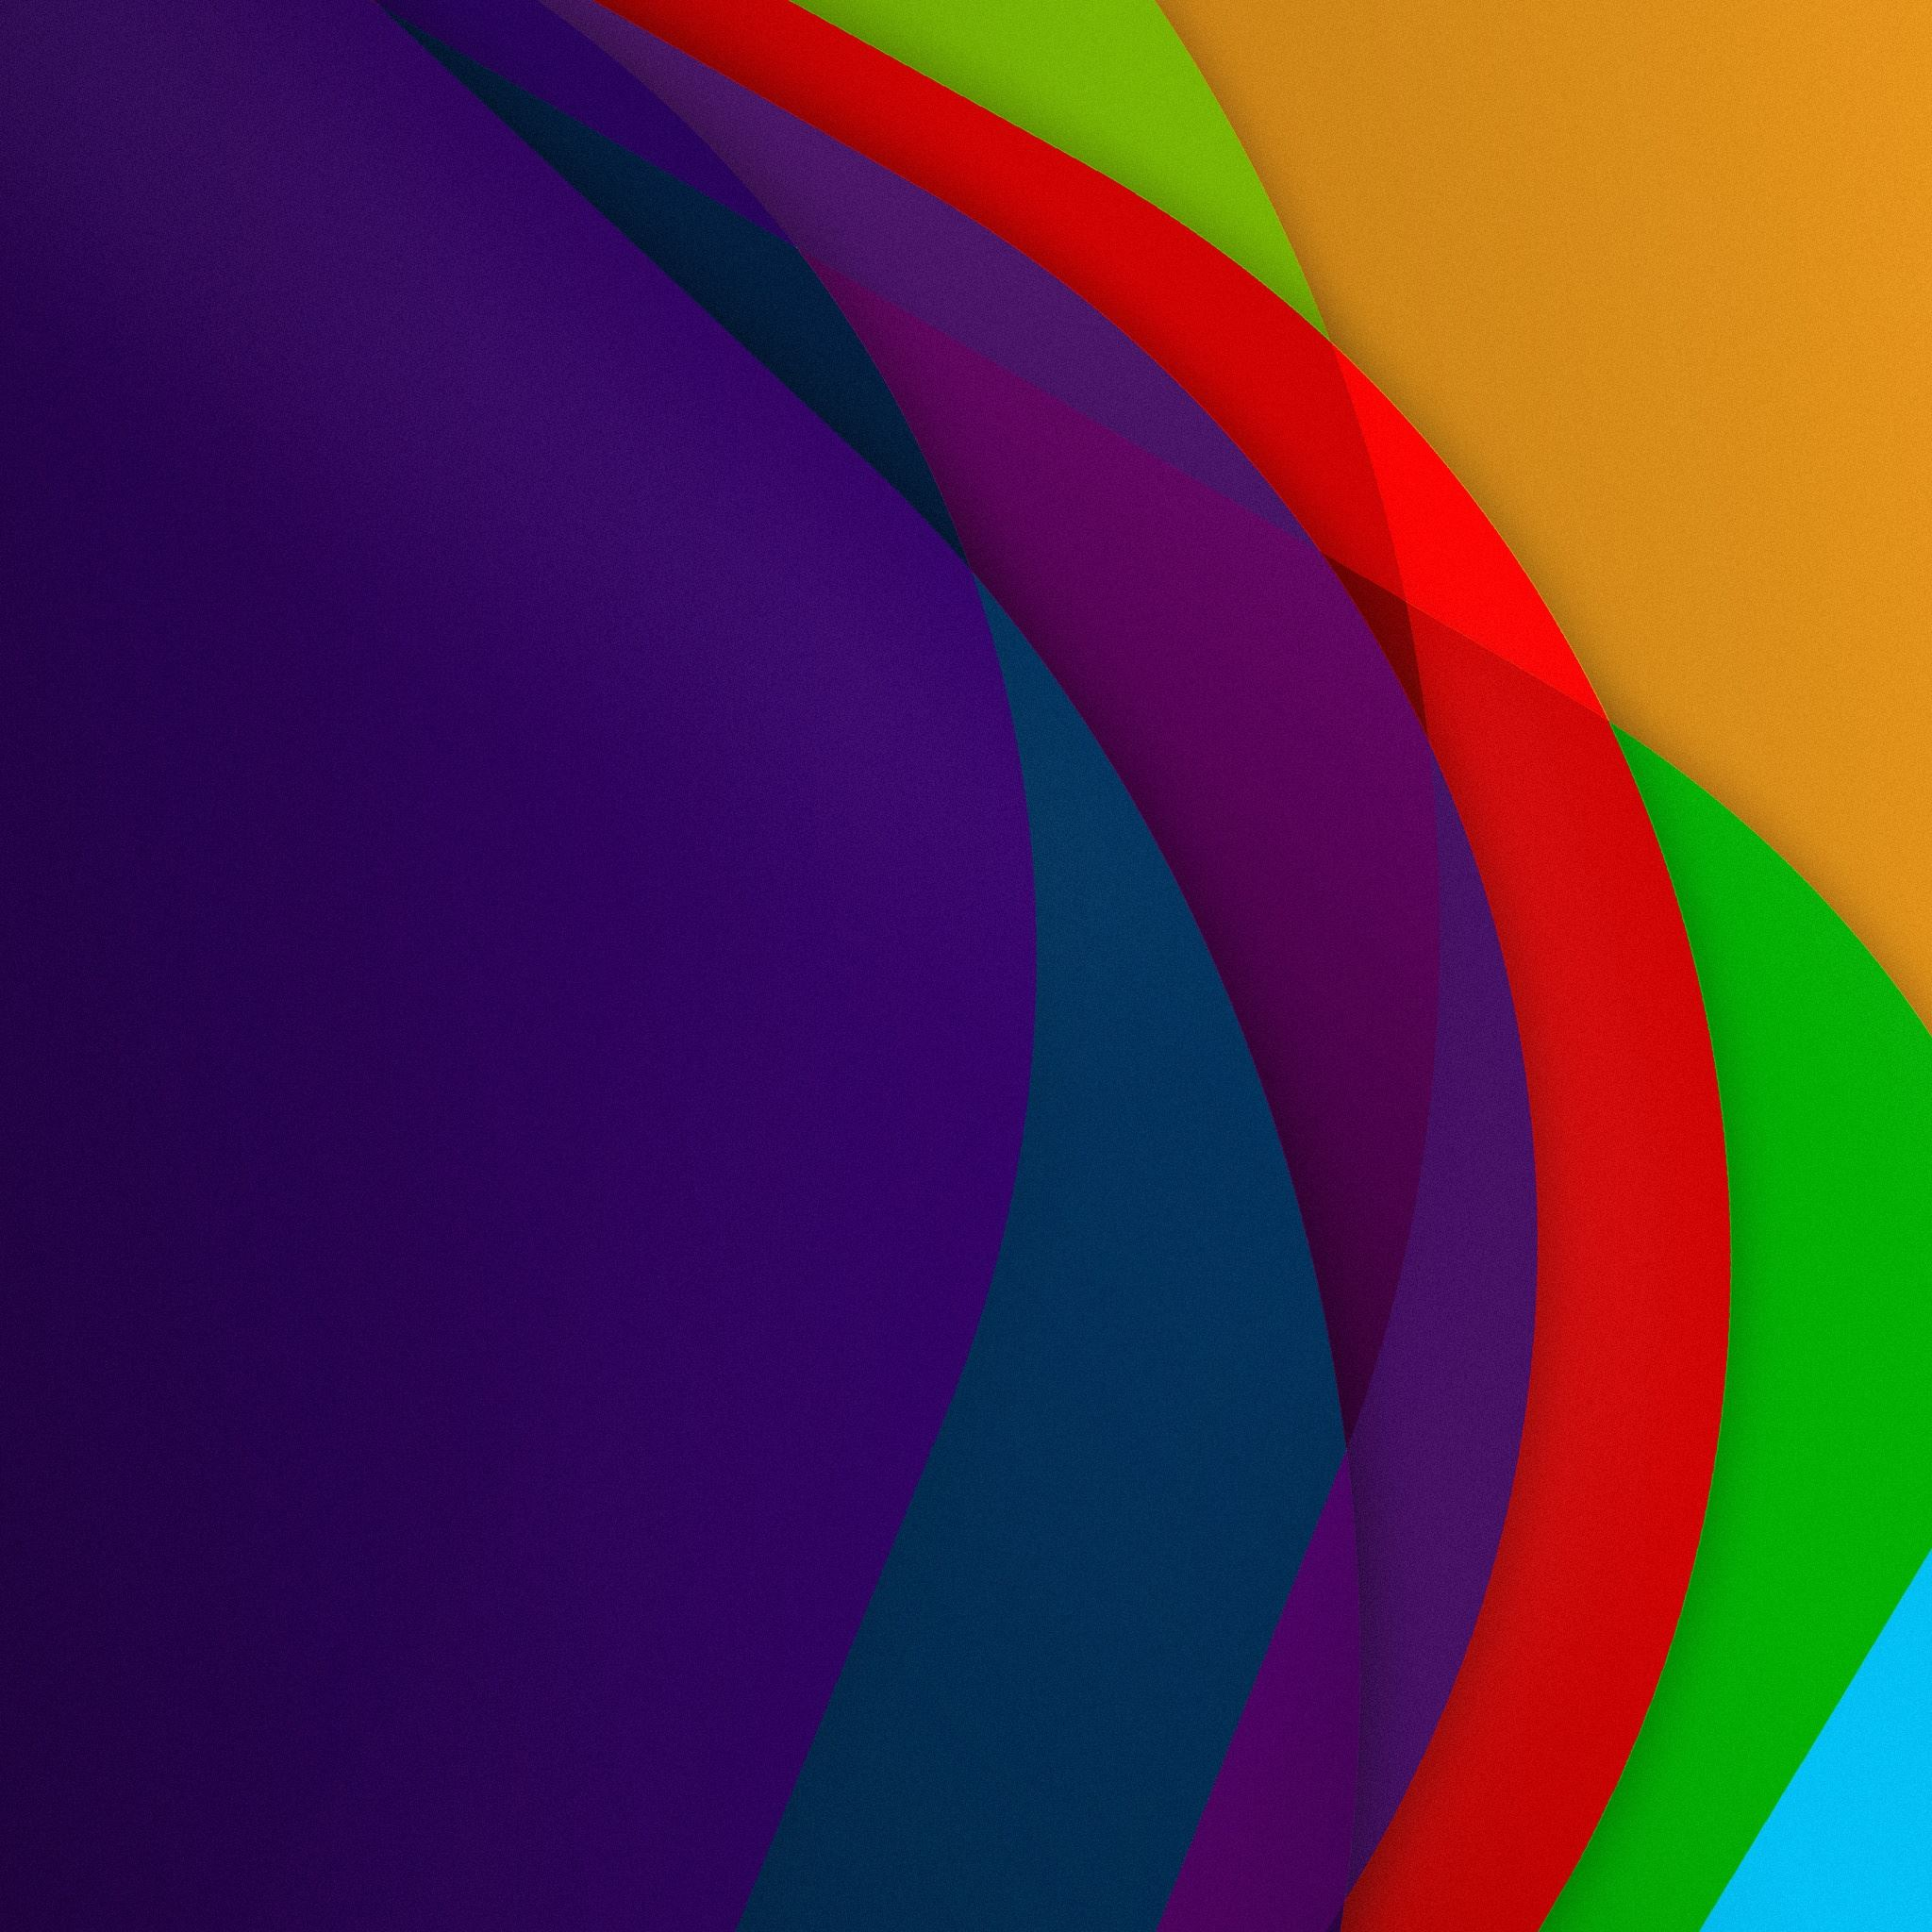 Colorful Iphone Wallpaper: IOS 7 Colorful Lines Background IPad Air Wallpaper Download